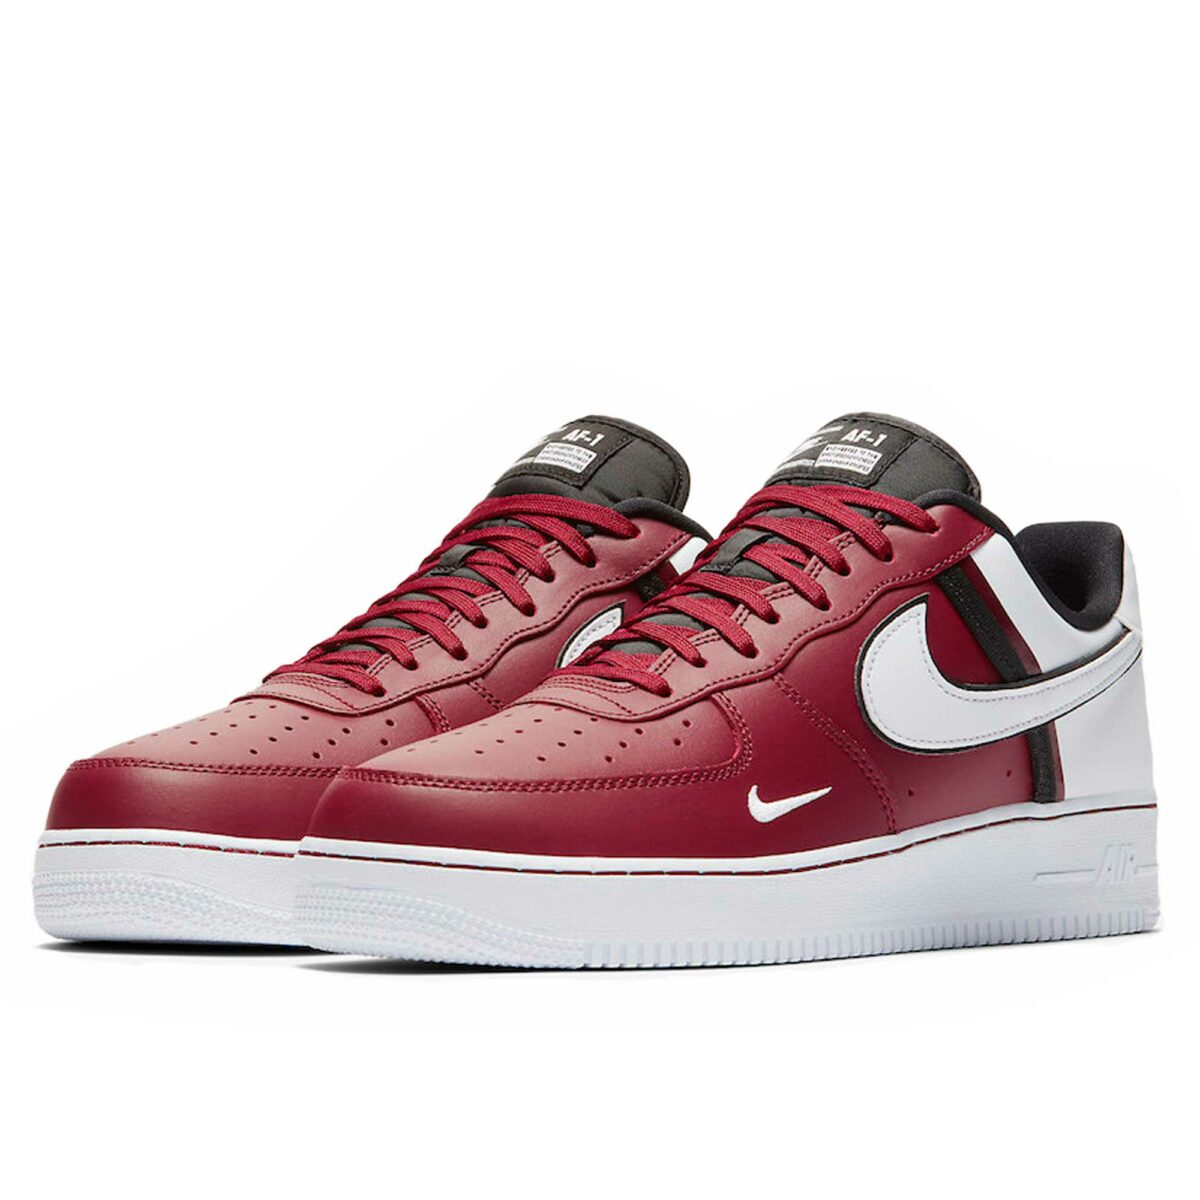 nike air force 1 lv 8 red white CI0061_600 купить